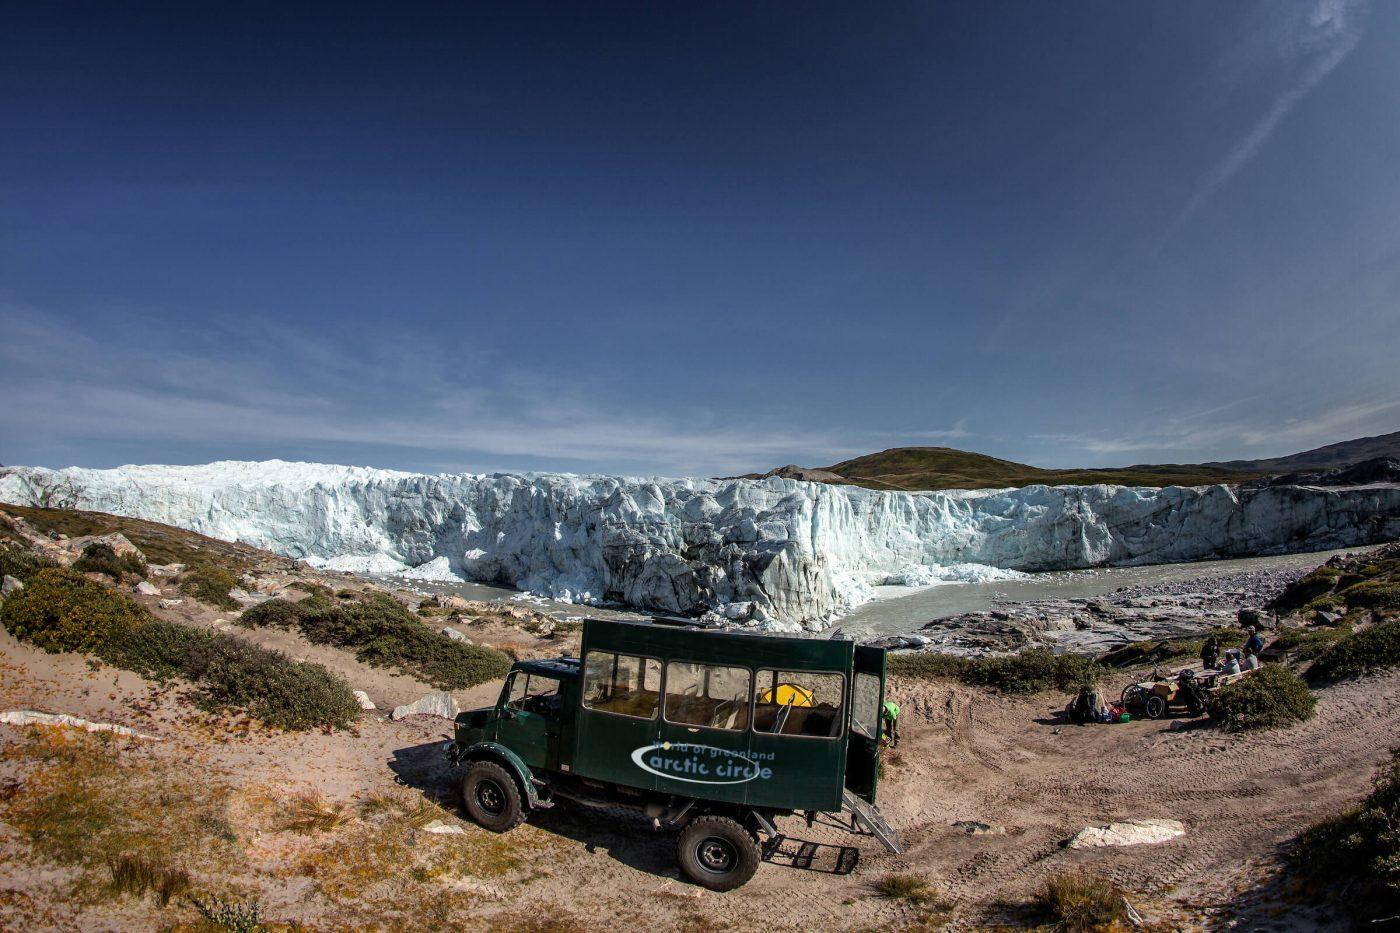 A tour bus from World of Greenland Arctic Circle parked by the Russell Glacier in Greenland. Photo by Mads Pihl